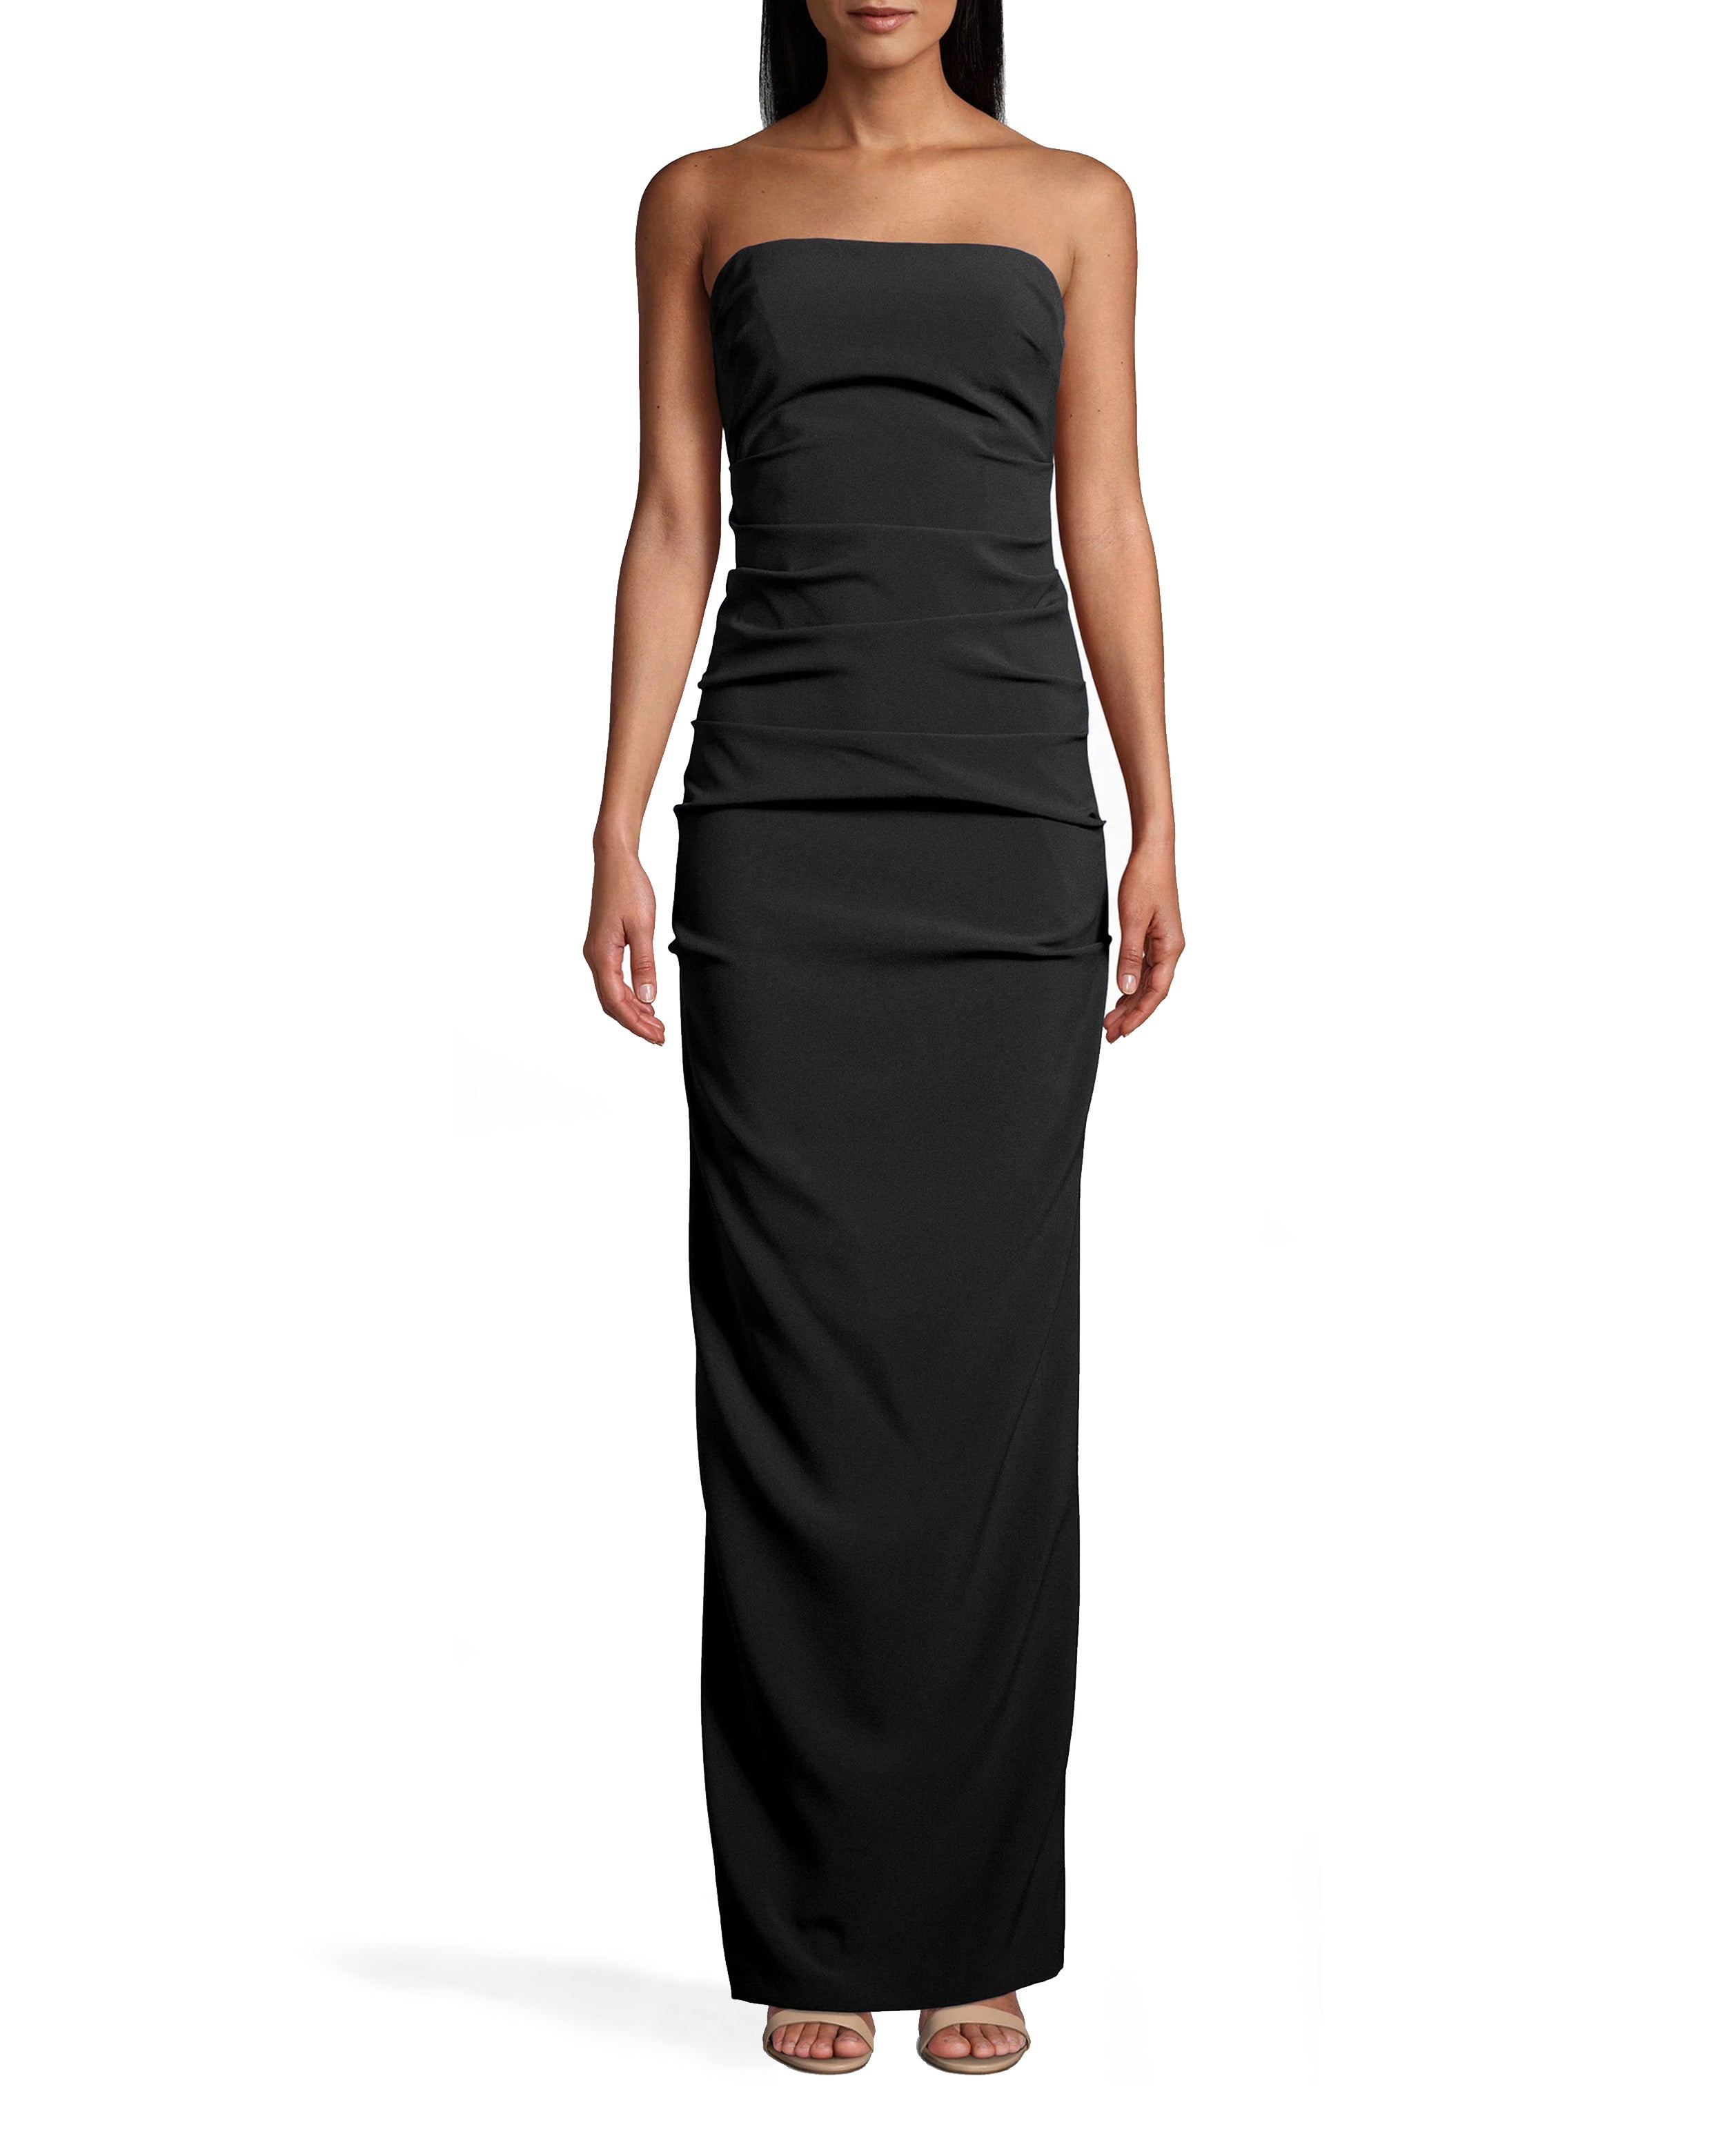 nicole miller new stretch crepe tuck strapless gown in navy blue   polyester/spandex/viscose   size 0